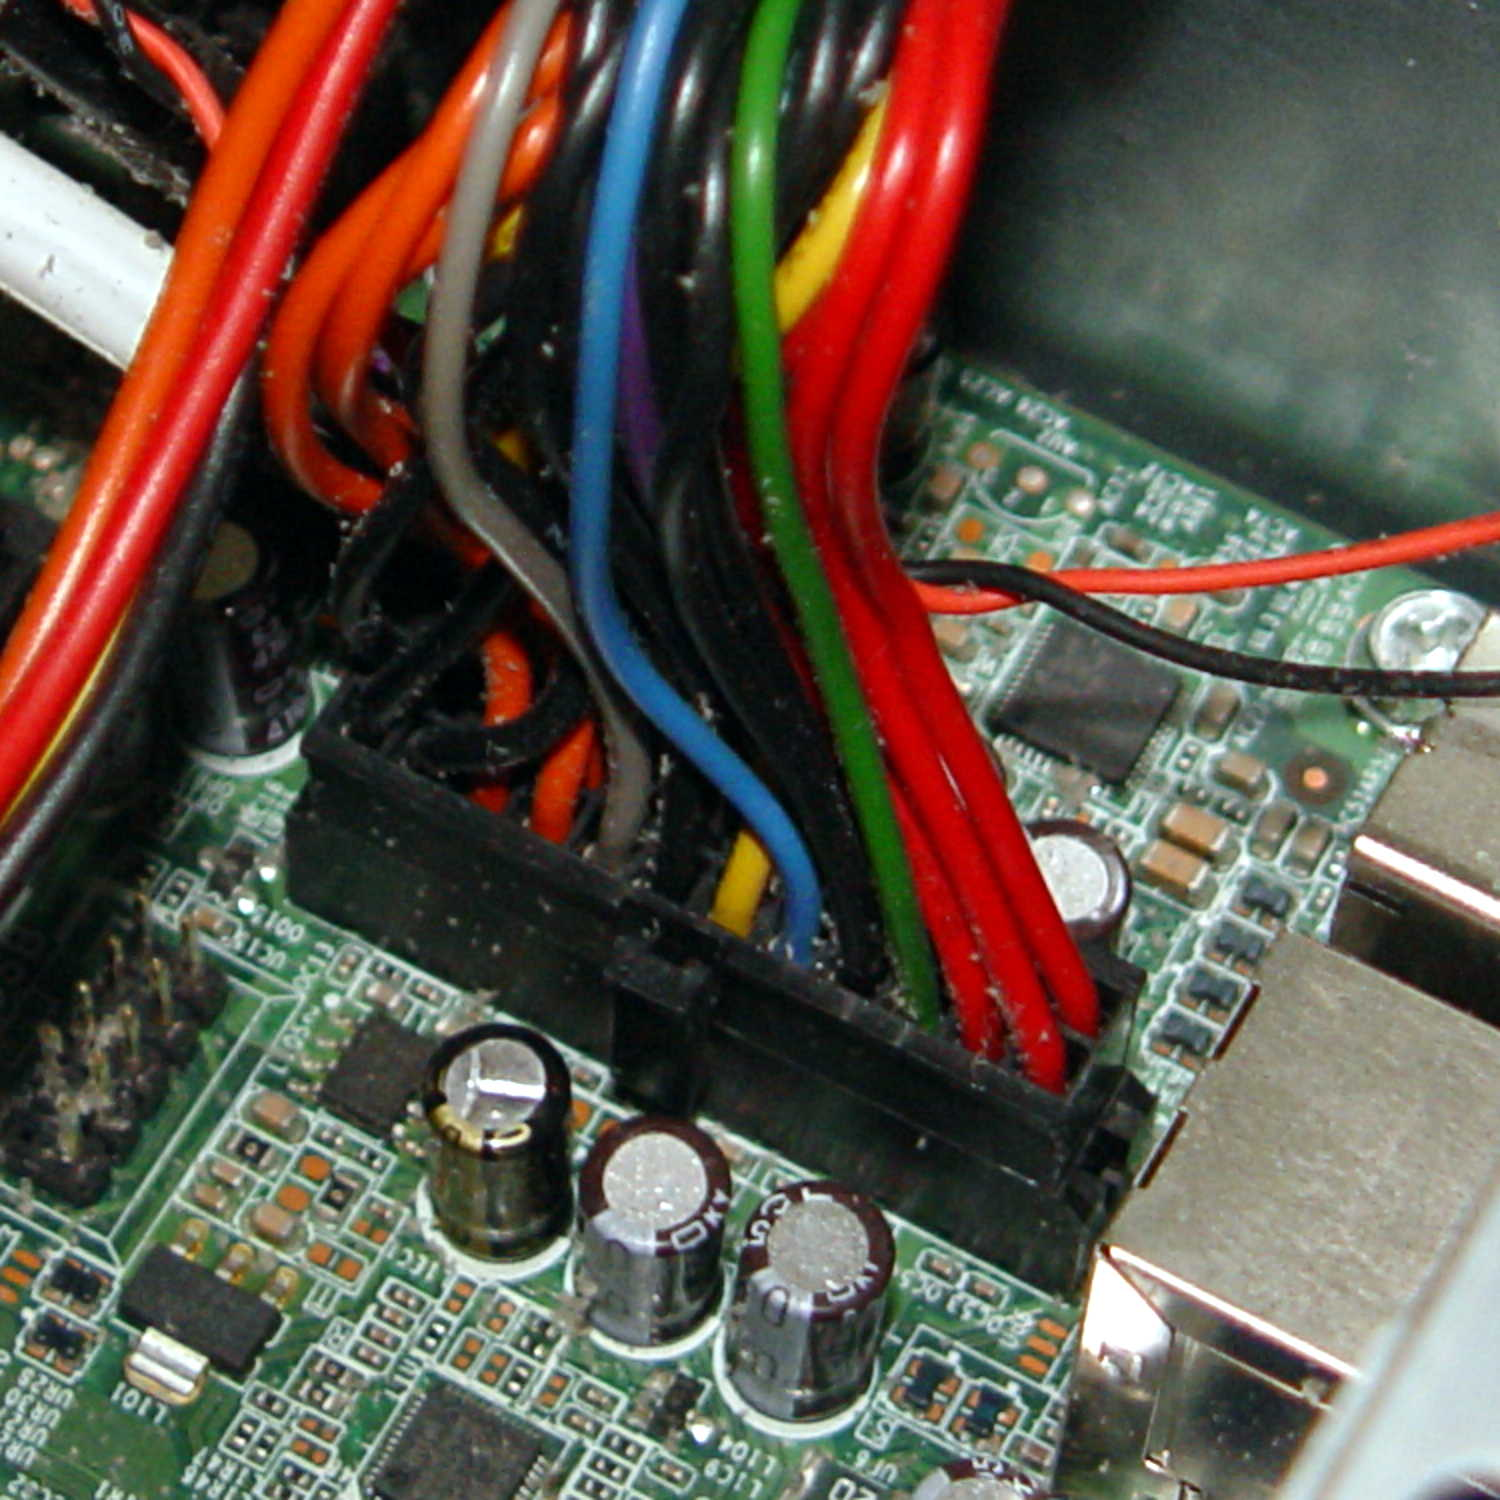 Optiplex 980 Power Supply: Capacitor FAIL | The Smell of